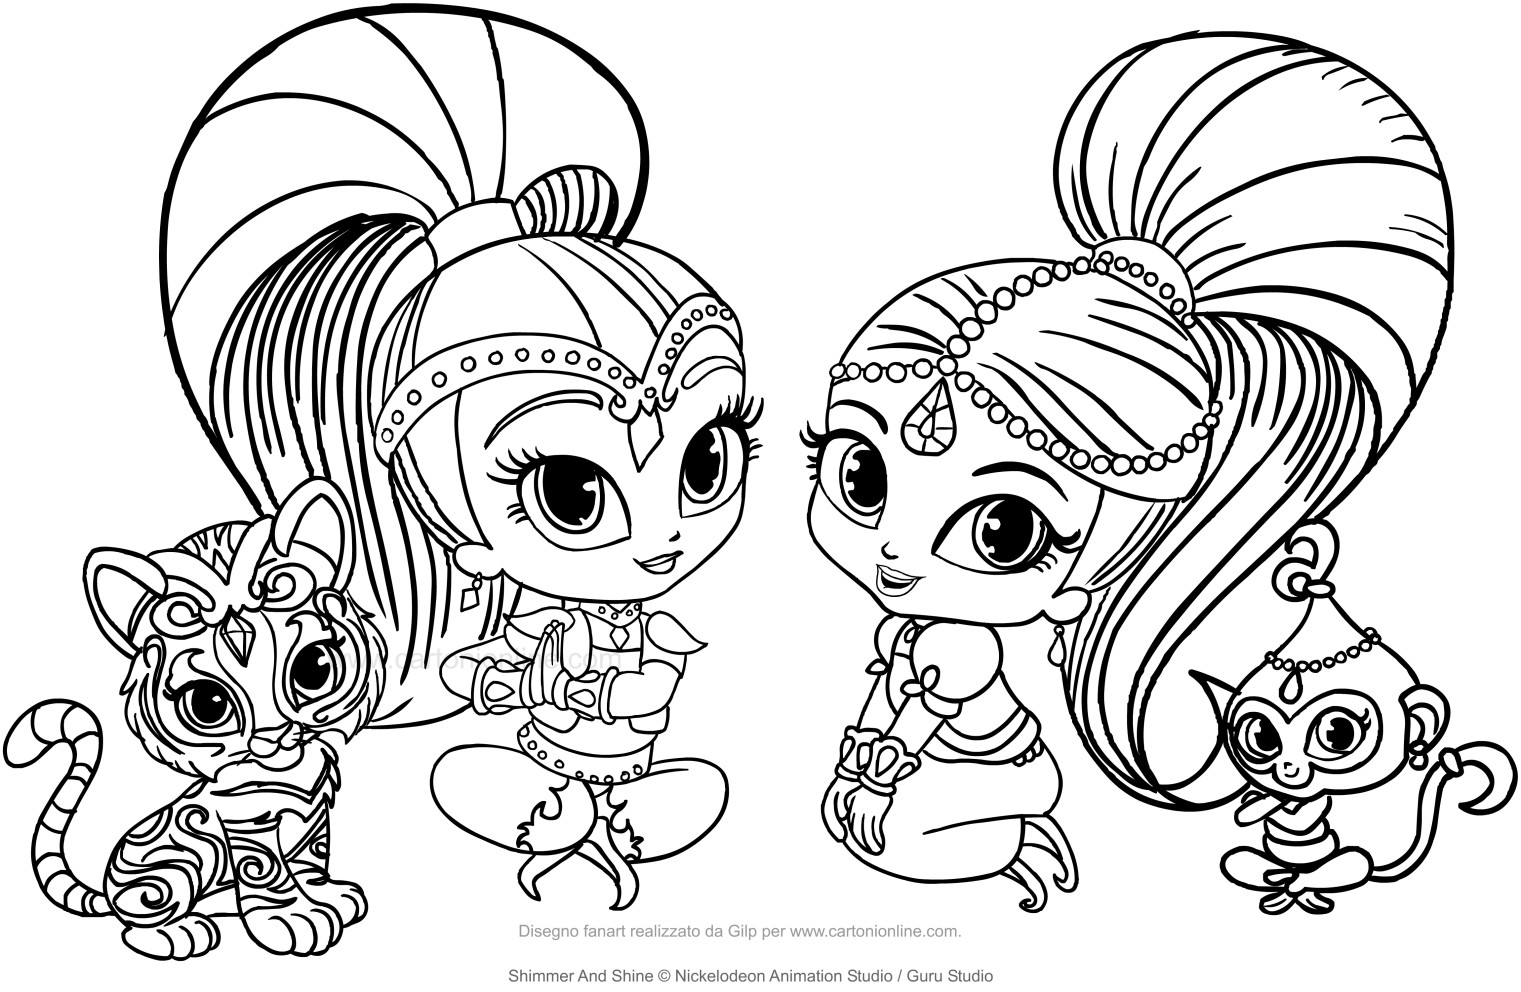 nickelodeon shimmer and shine coloring pages | Shimmer Shine Coloring Pages at GetDrawings.com | Free for ...